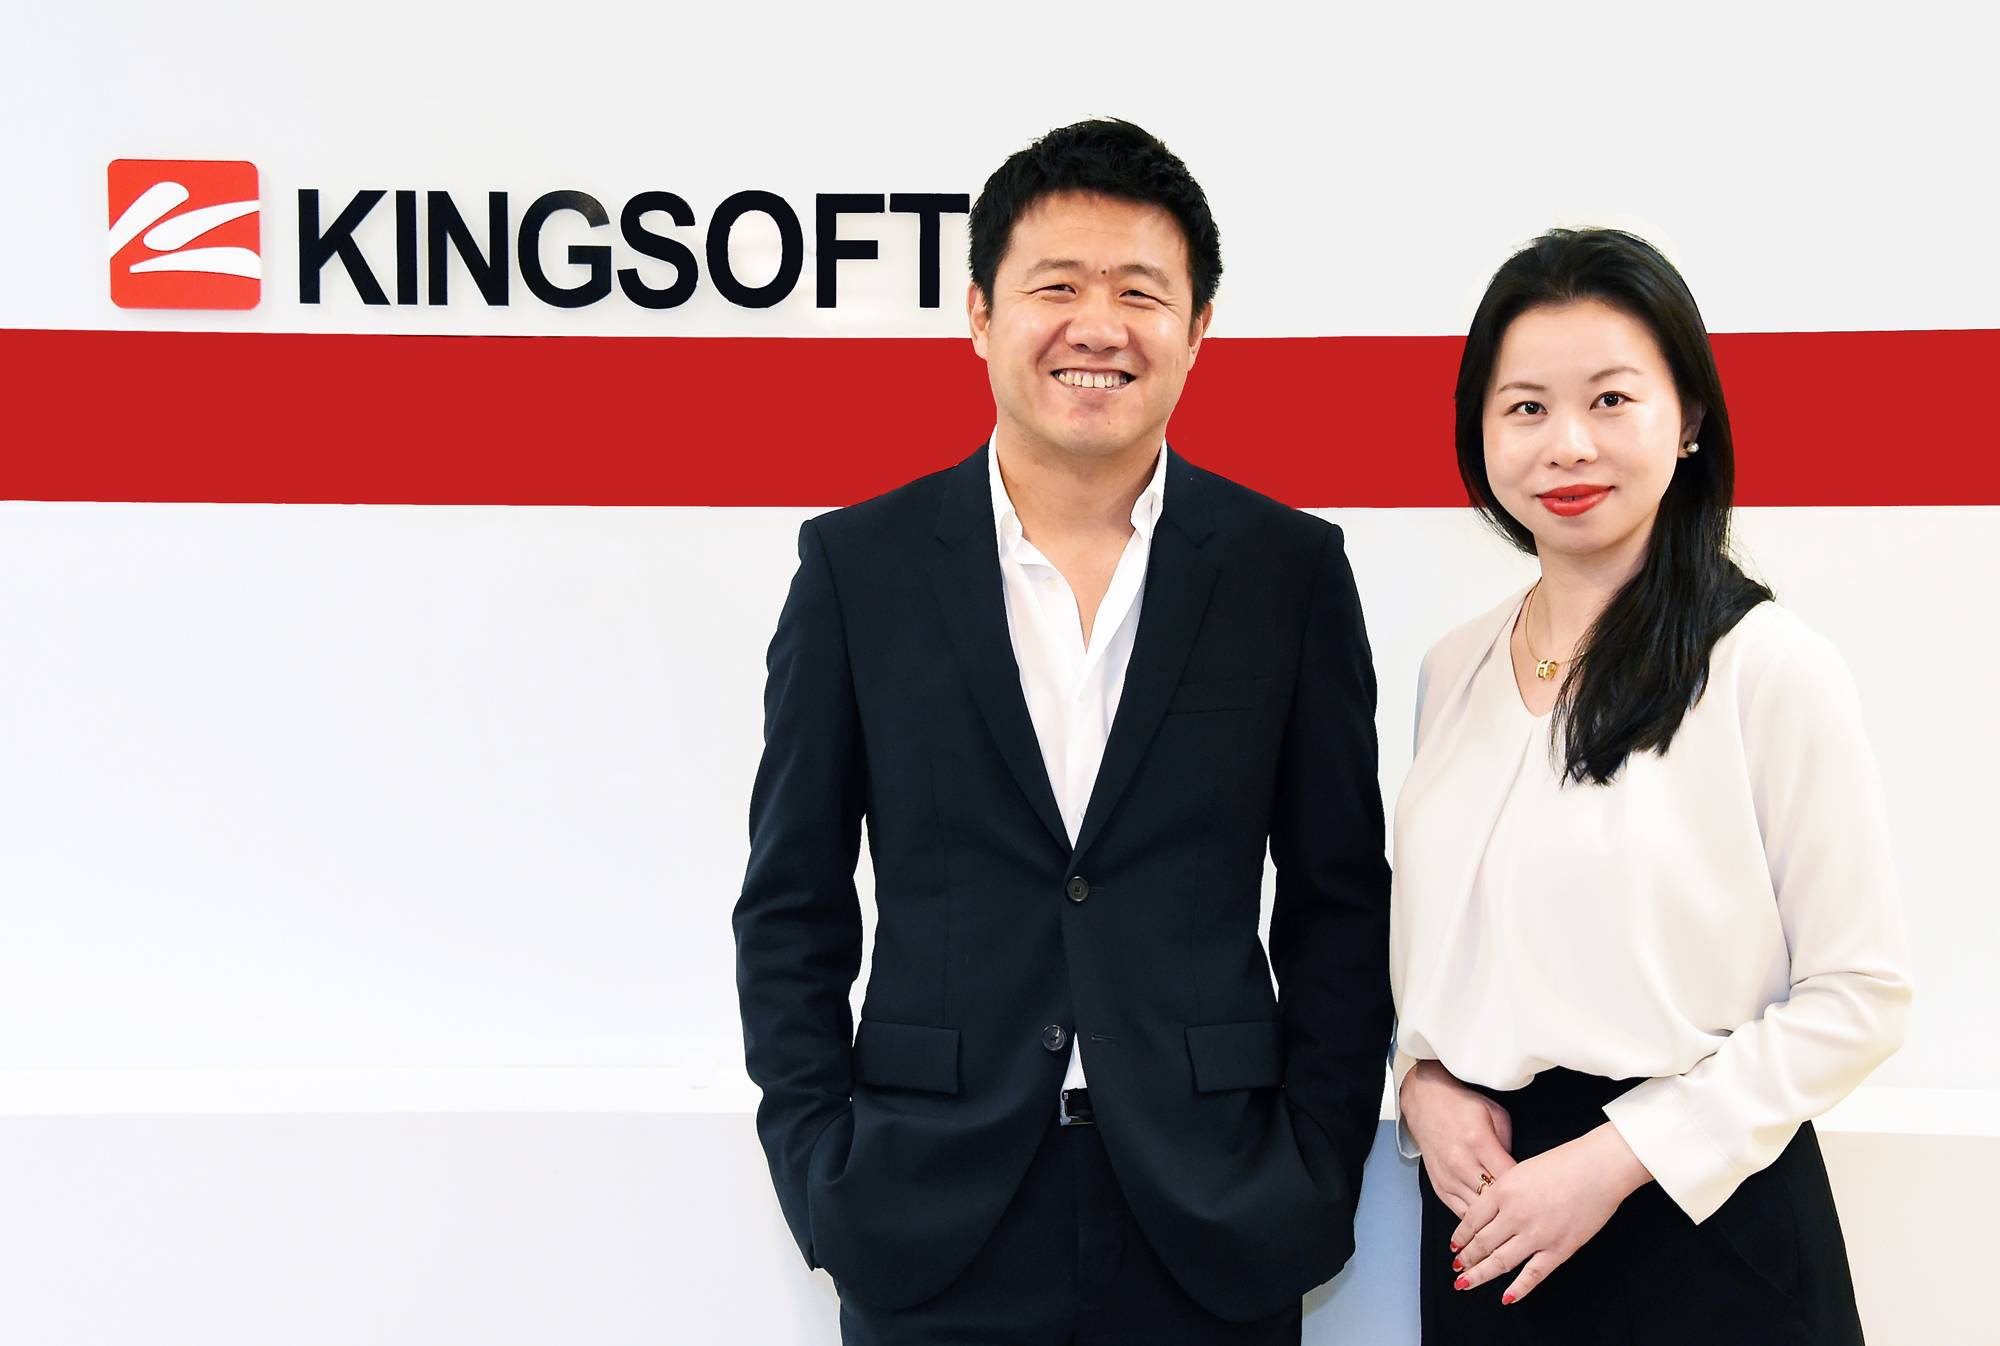 kingsoft-new